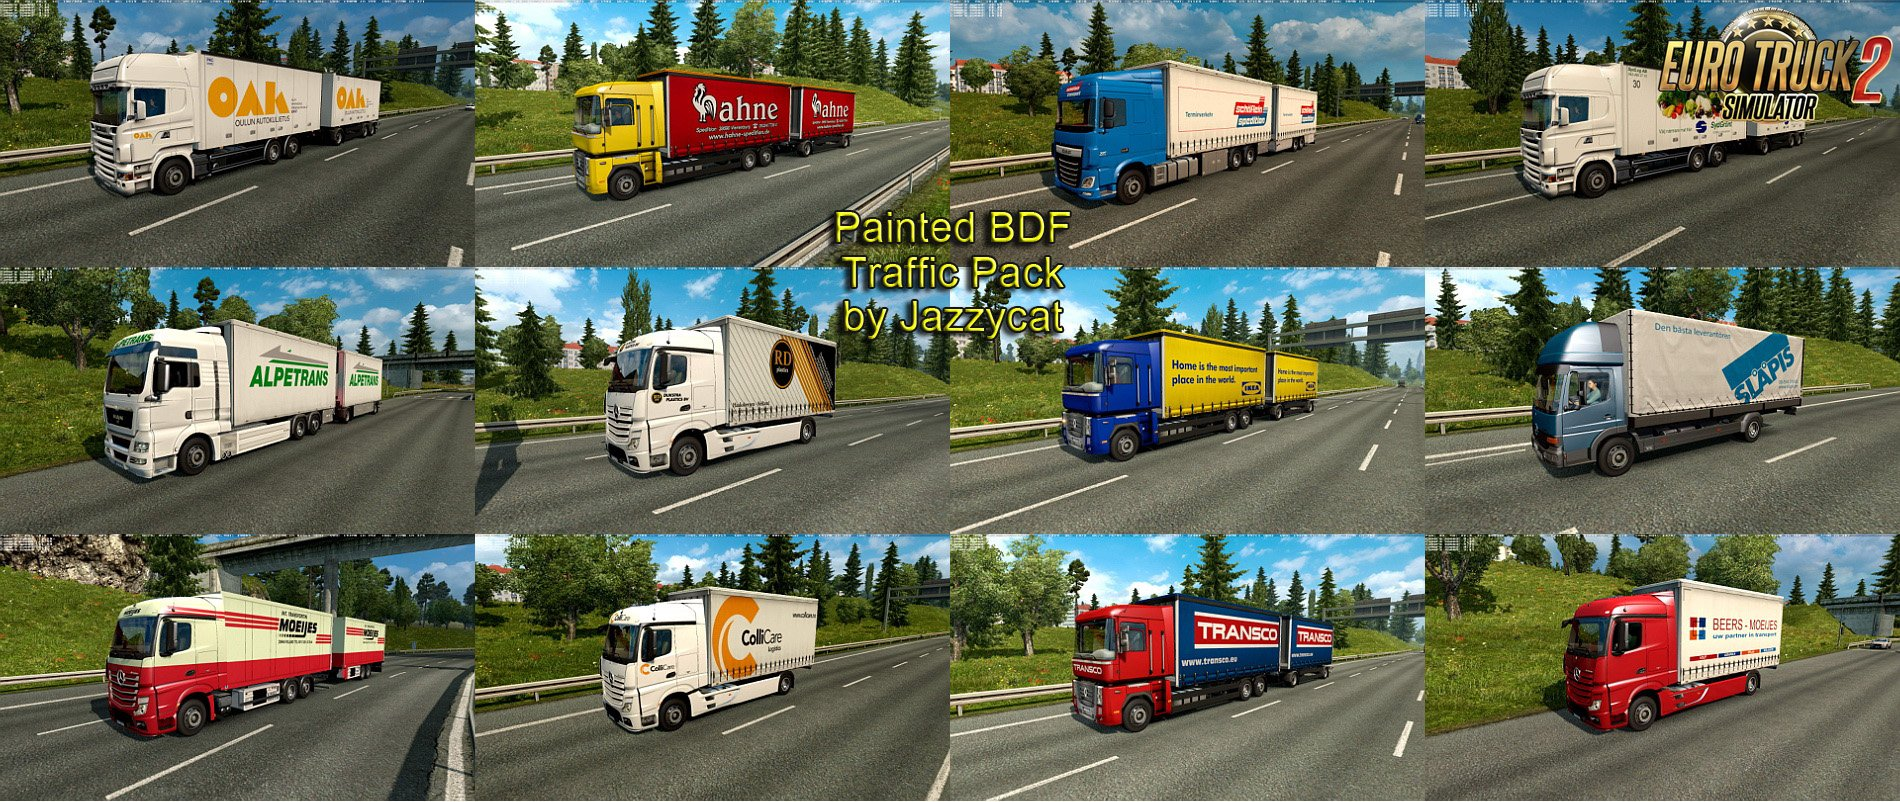 Painted BDF Traffic Pack v2.4 by Jazzycat